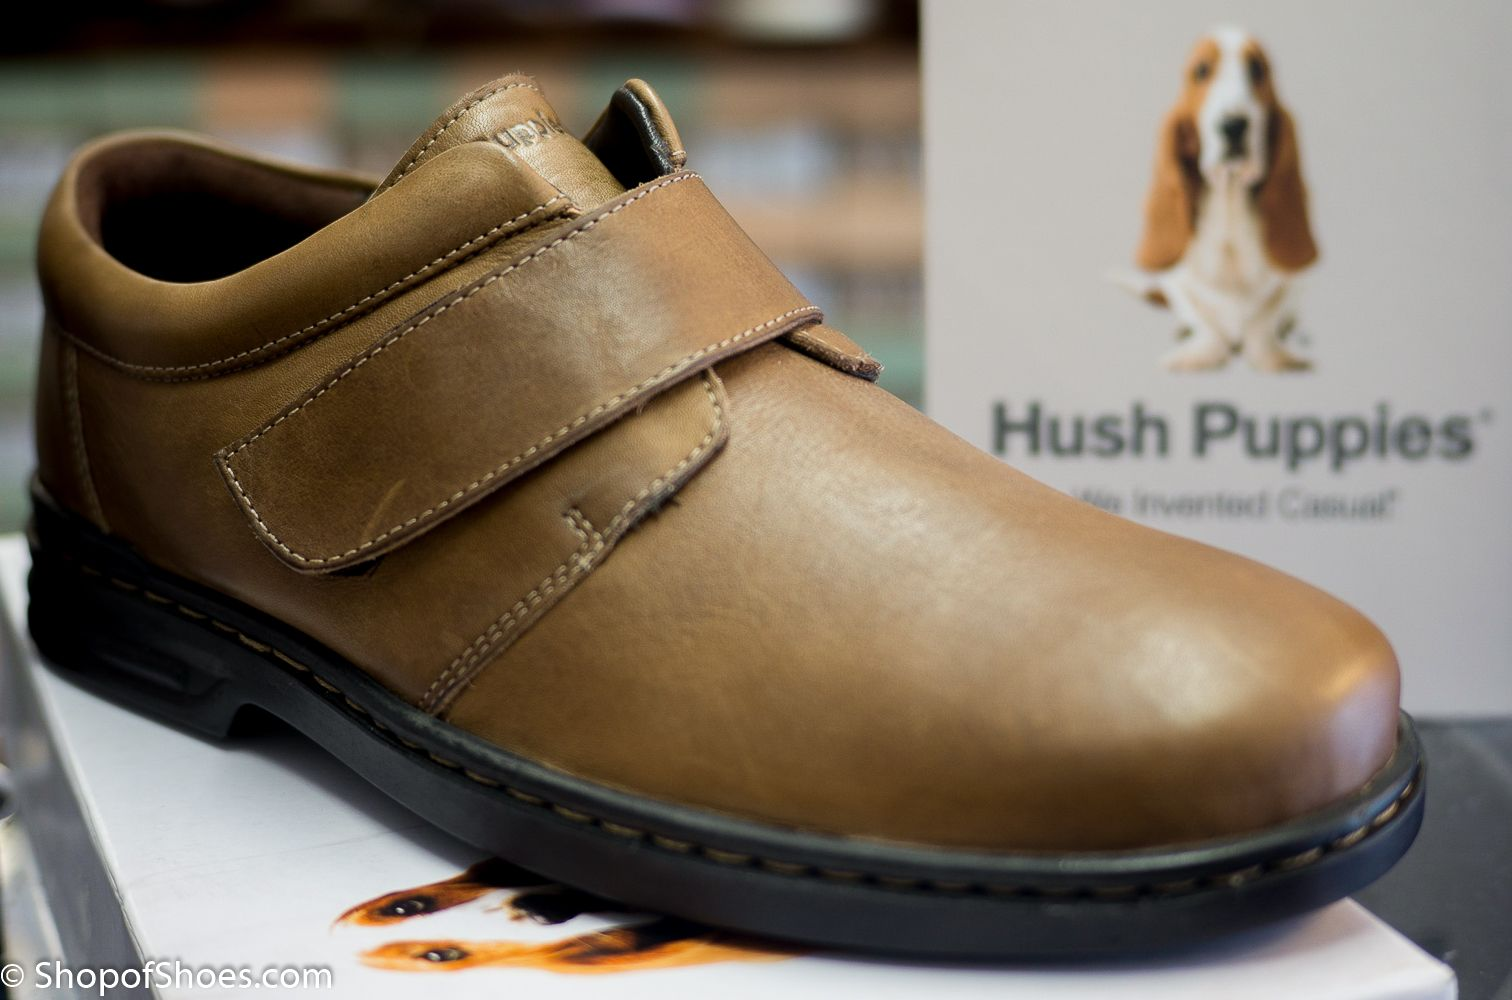 Hush Puppies Mens soft leather velcro